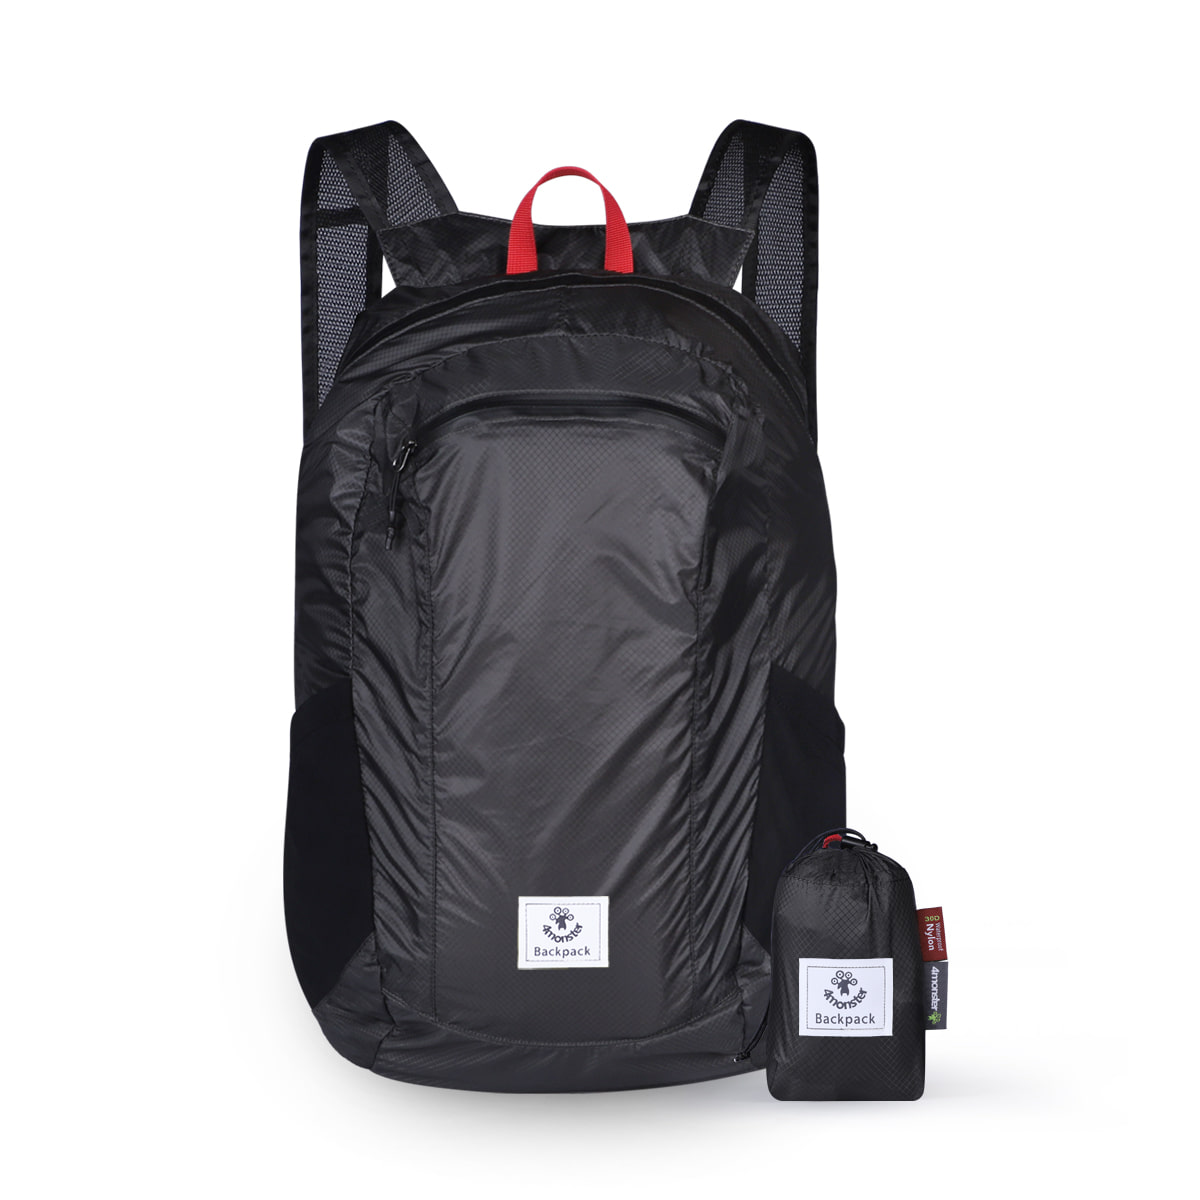 FOLDING BACKPACK 24L BLACK